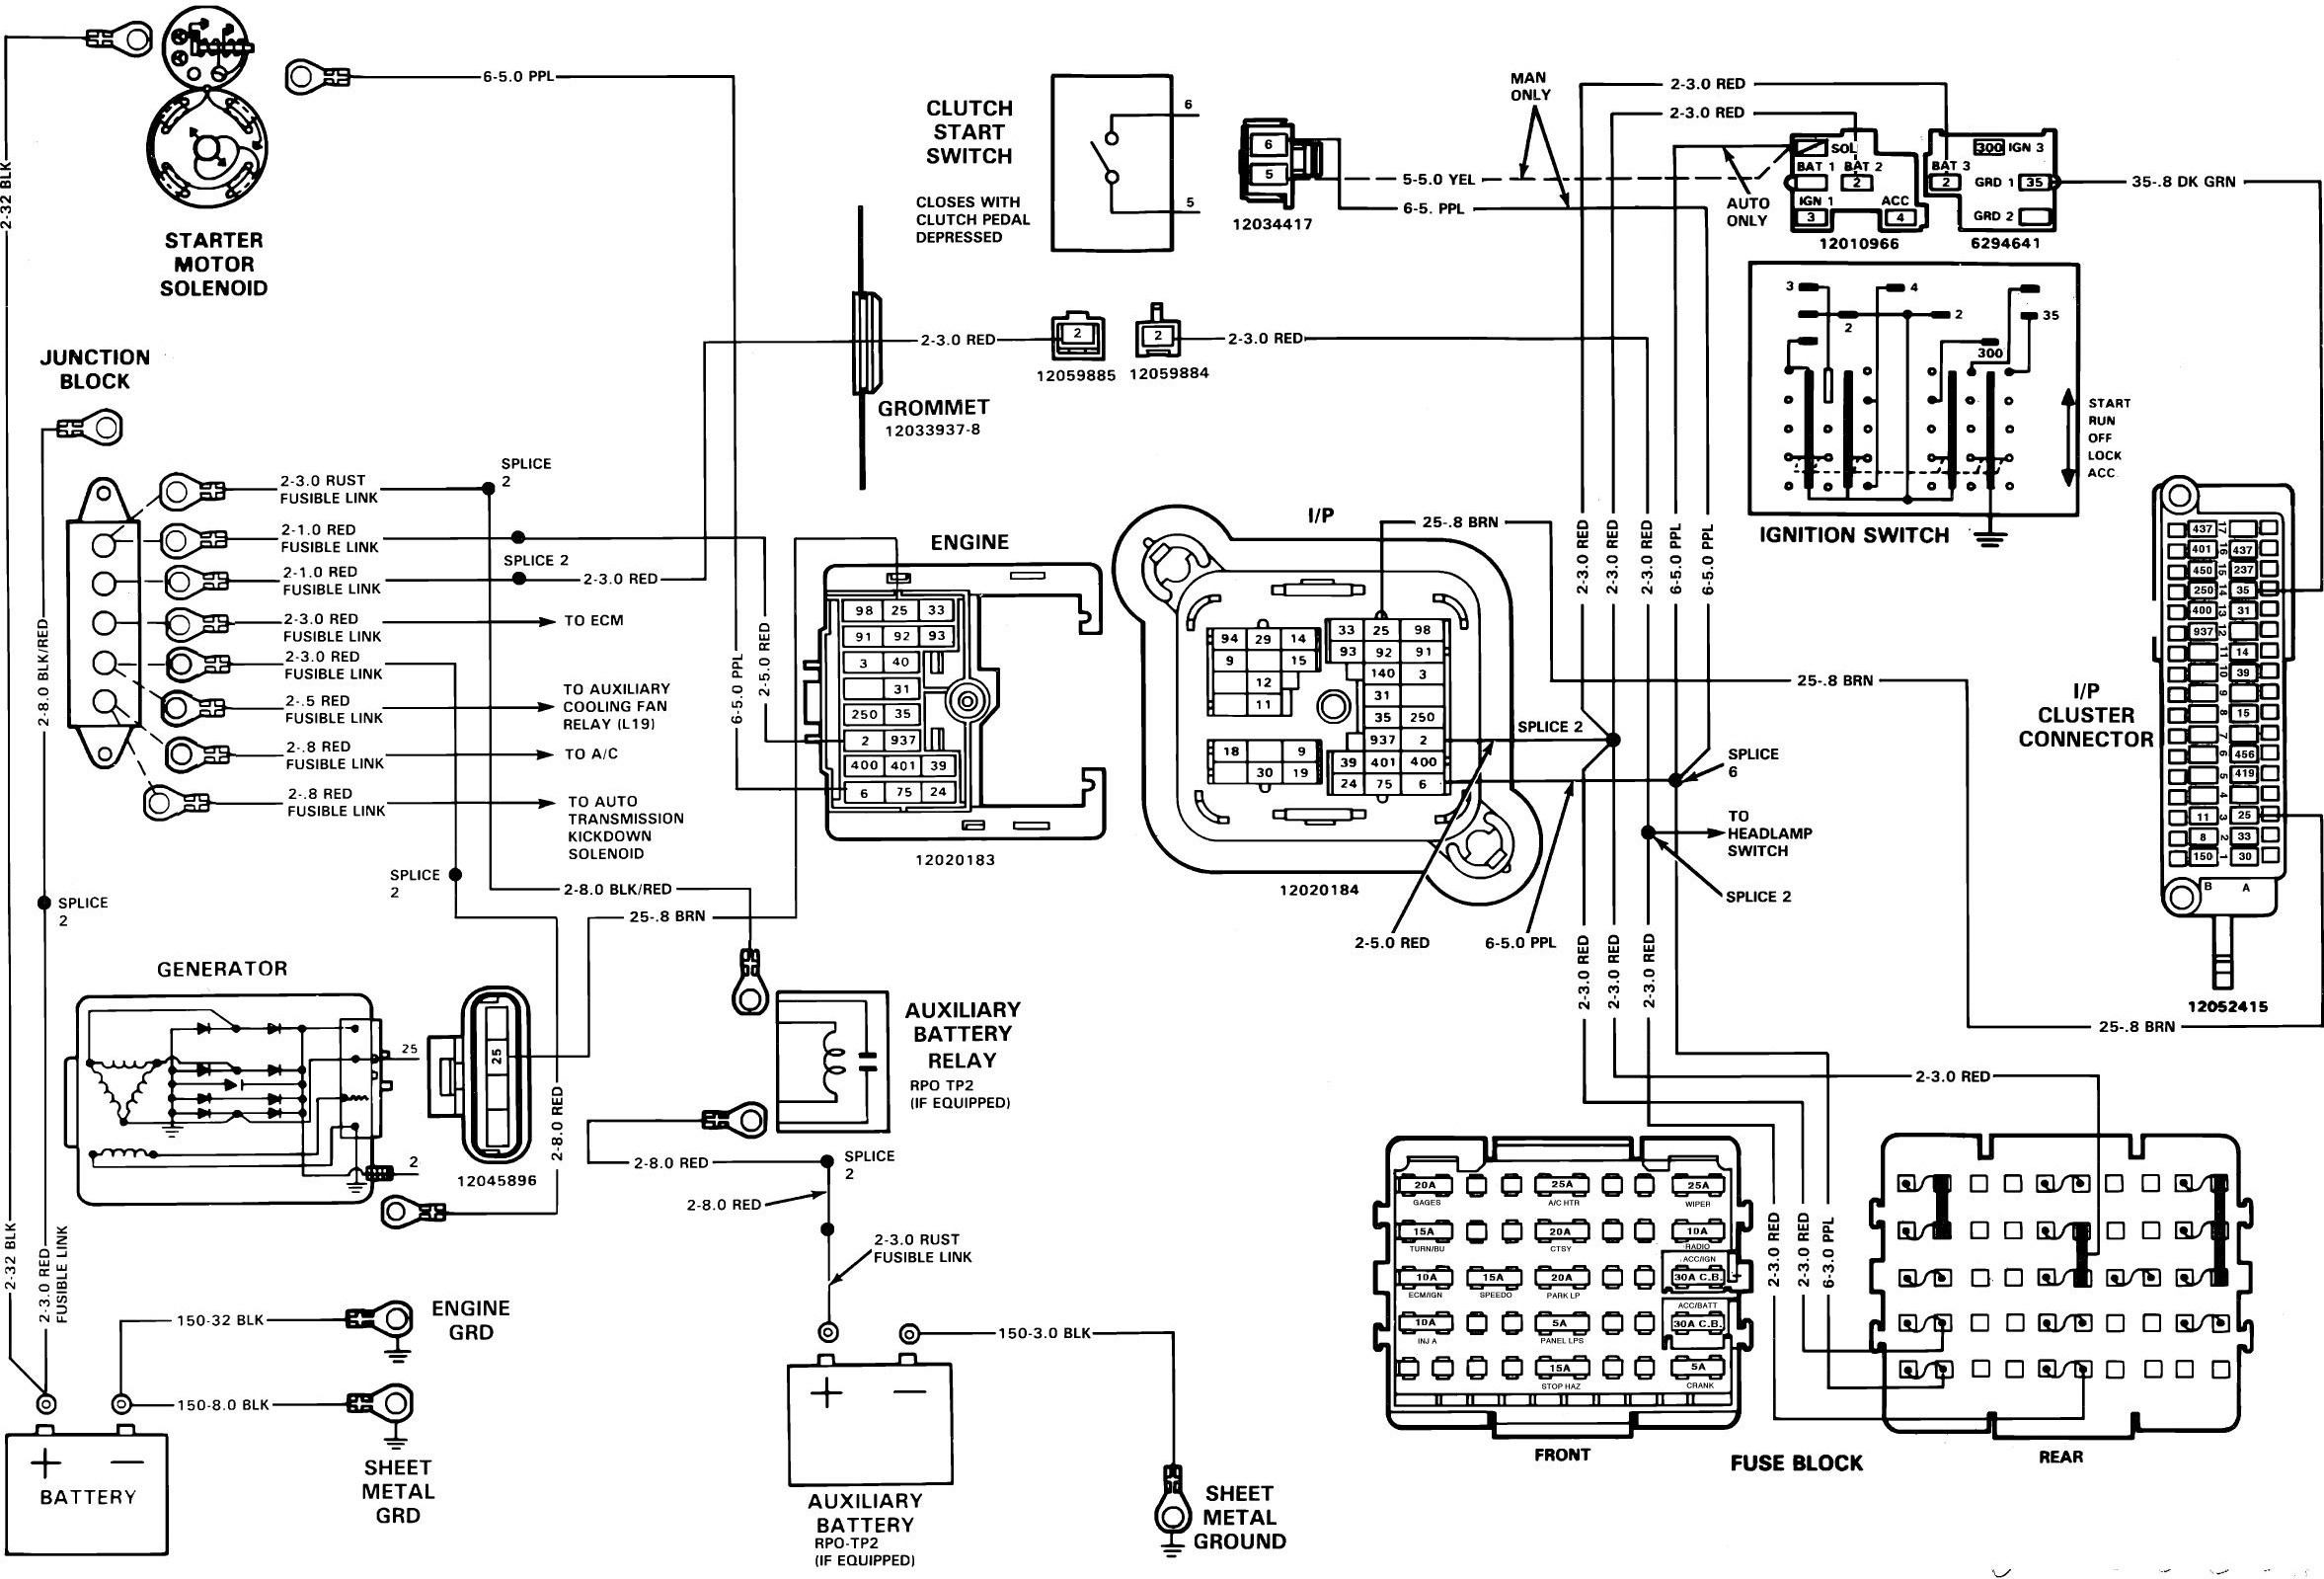 7d801 2005 jaguar xj8 engine diagram